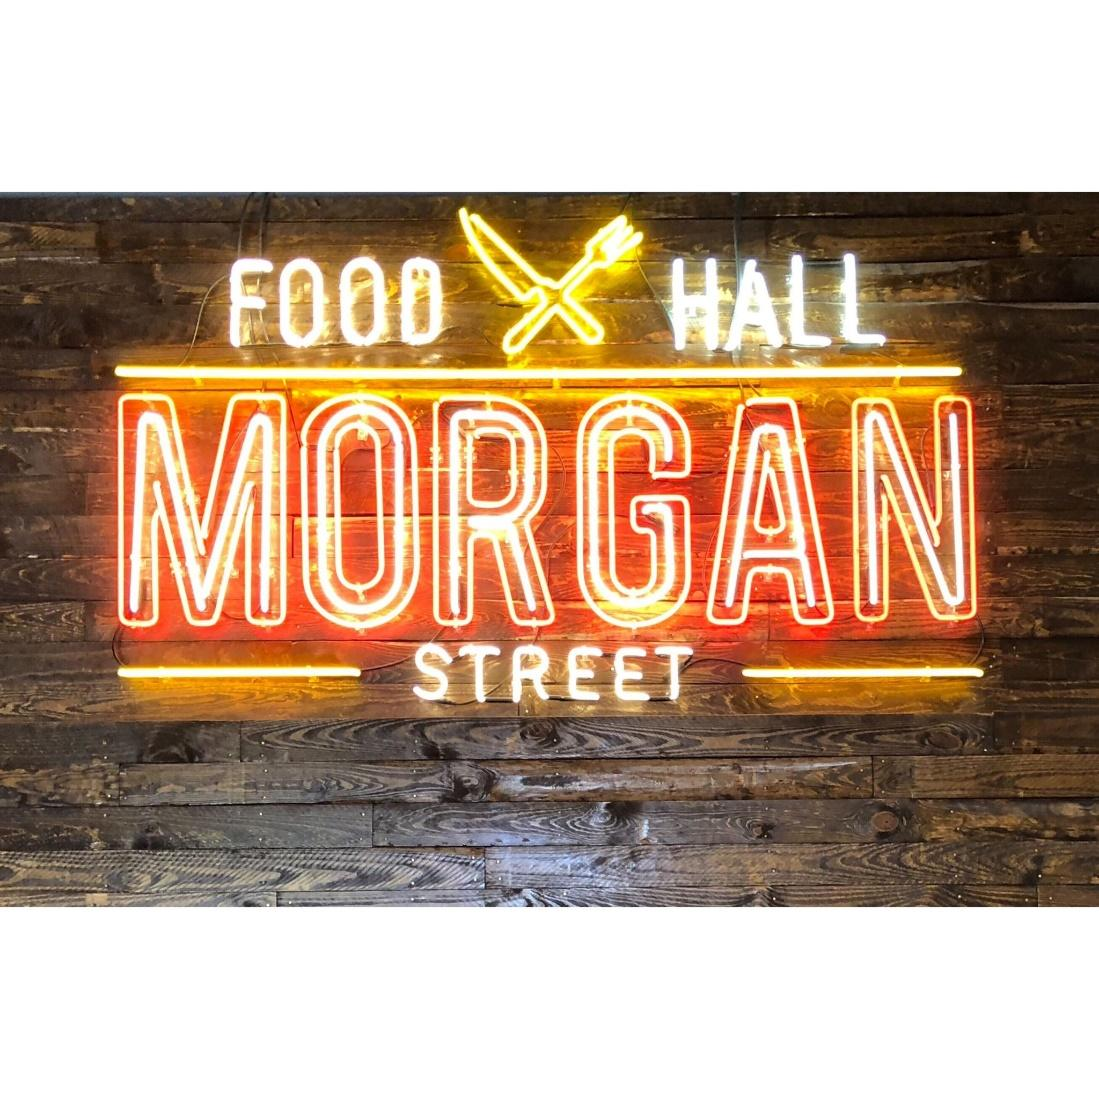 Morgan Street Food Hall puts 19 restaurants and 15 specialty vendors under one roof to serve up some of the best local food in Raleigh. The Food Hall is open Daily.